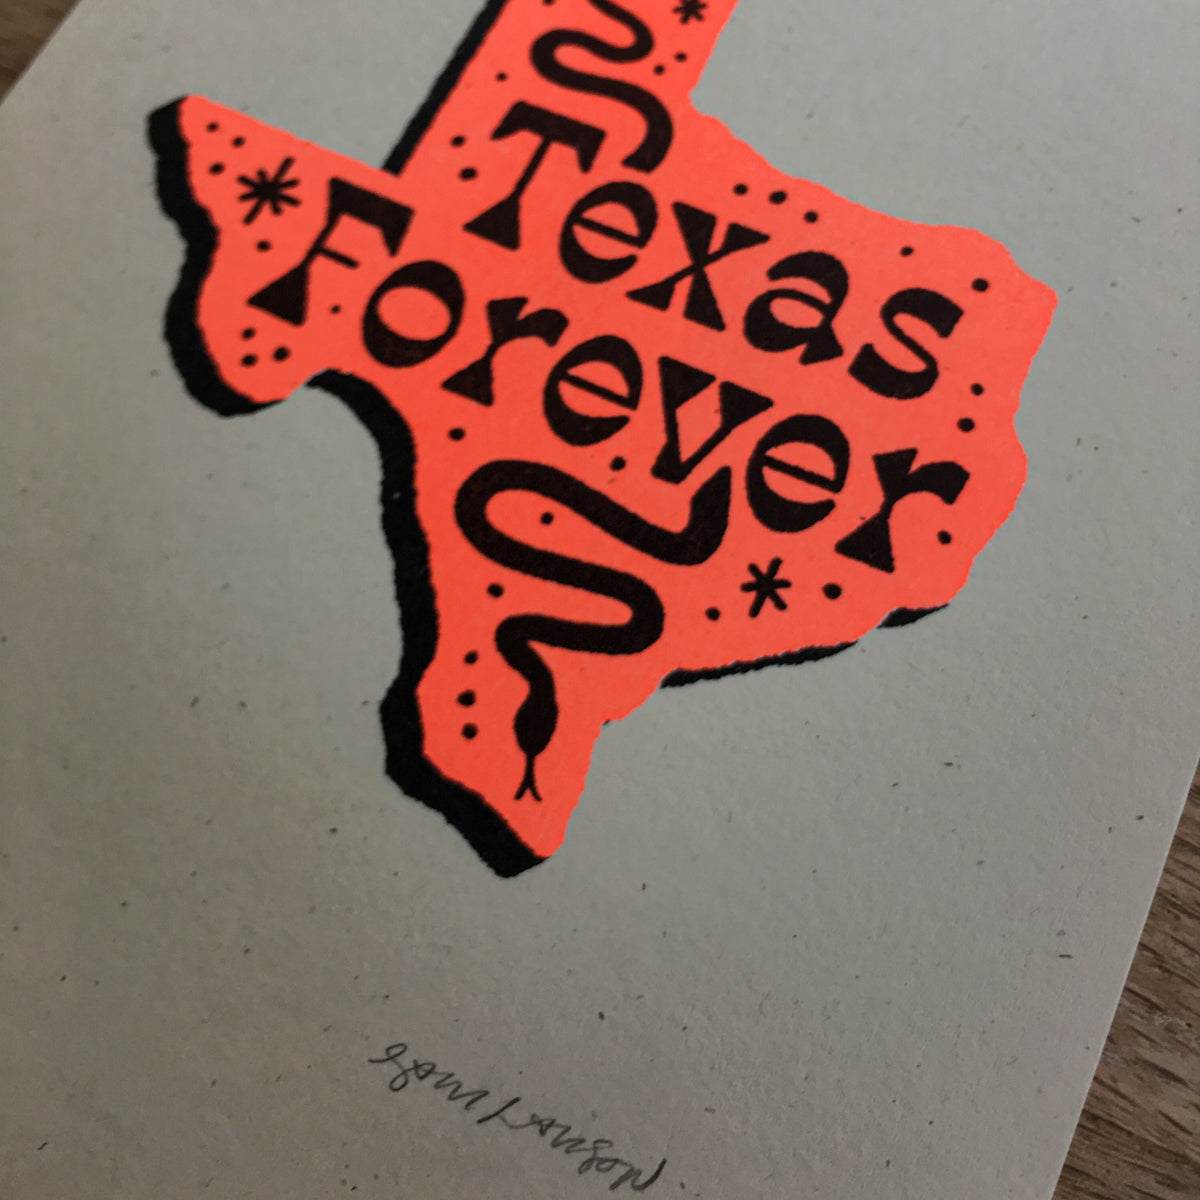 Texas Forever - Signed Print #105